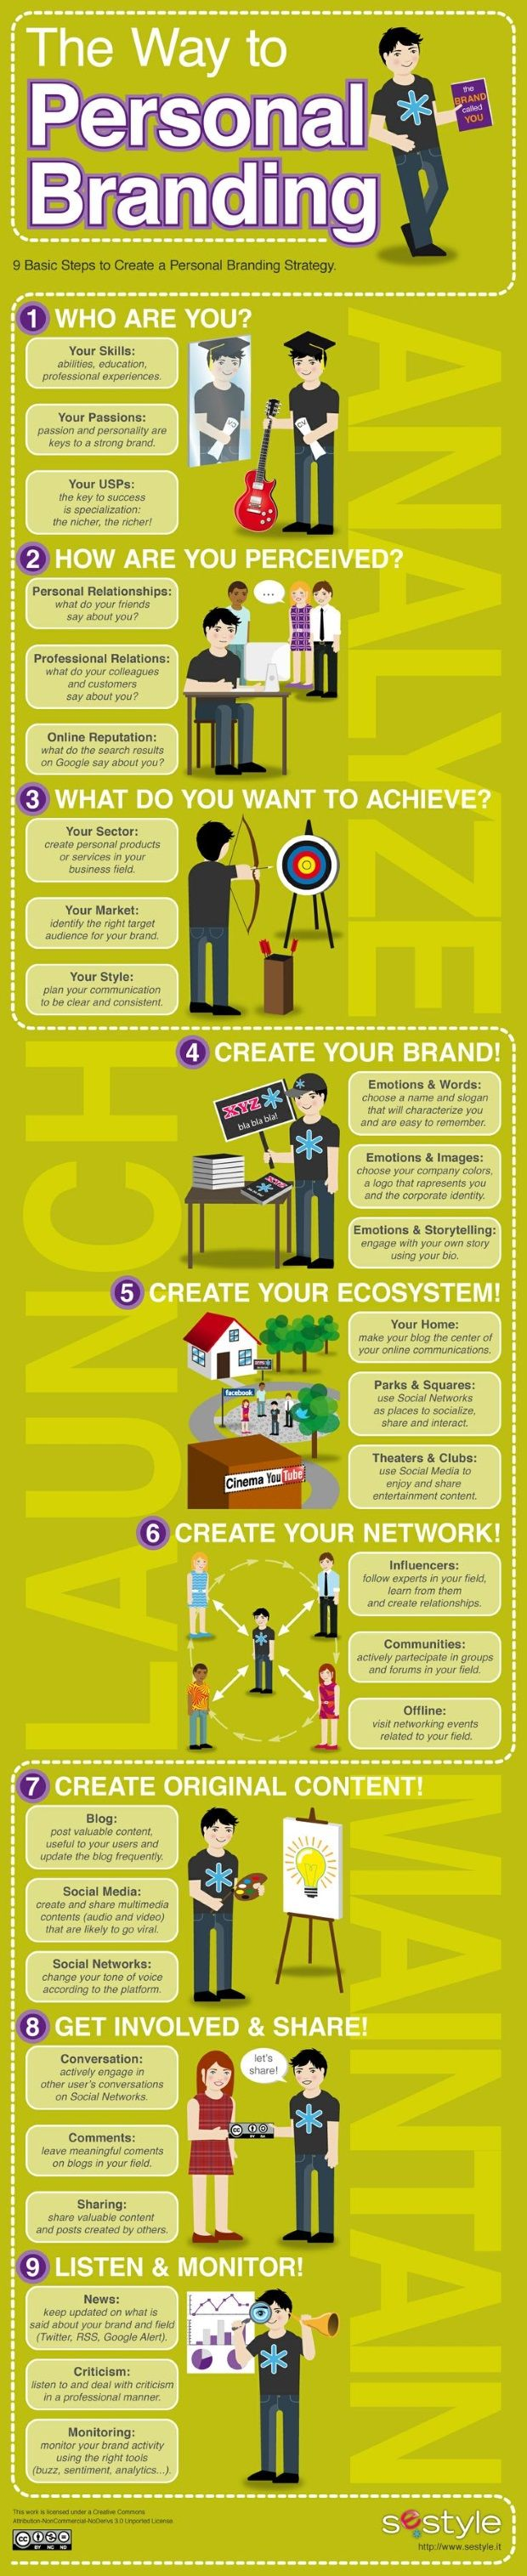 How to Create a Personal Branding Strategy [9 STEPS]